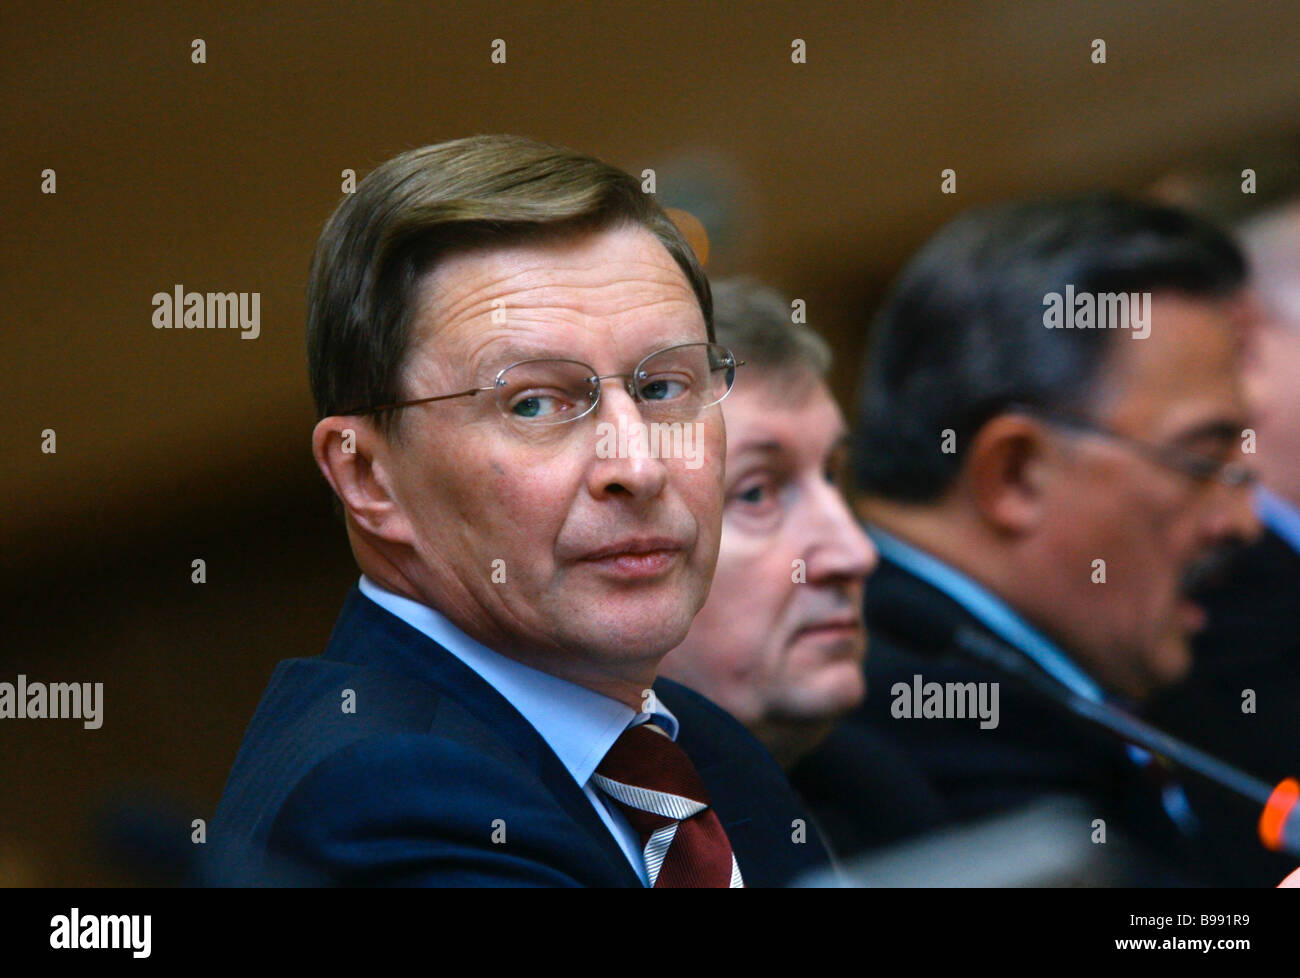 From left to right Russian Deputy Prime Minster <b>Sergei Ivanov</b> and ... - from-left-to-right-russian-deputy-prime-minster-sergei-ivanov-and-B991R9